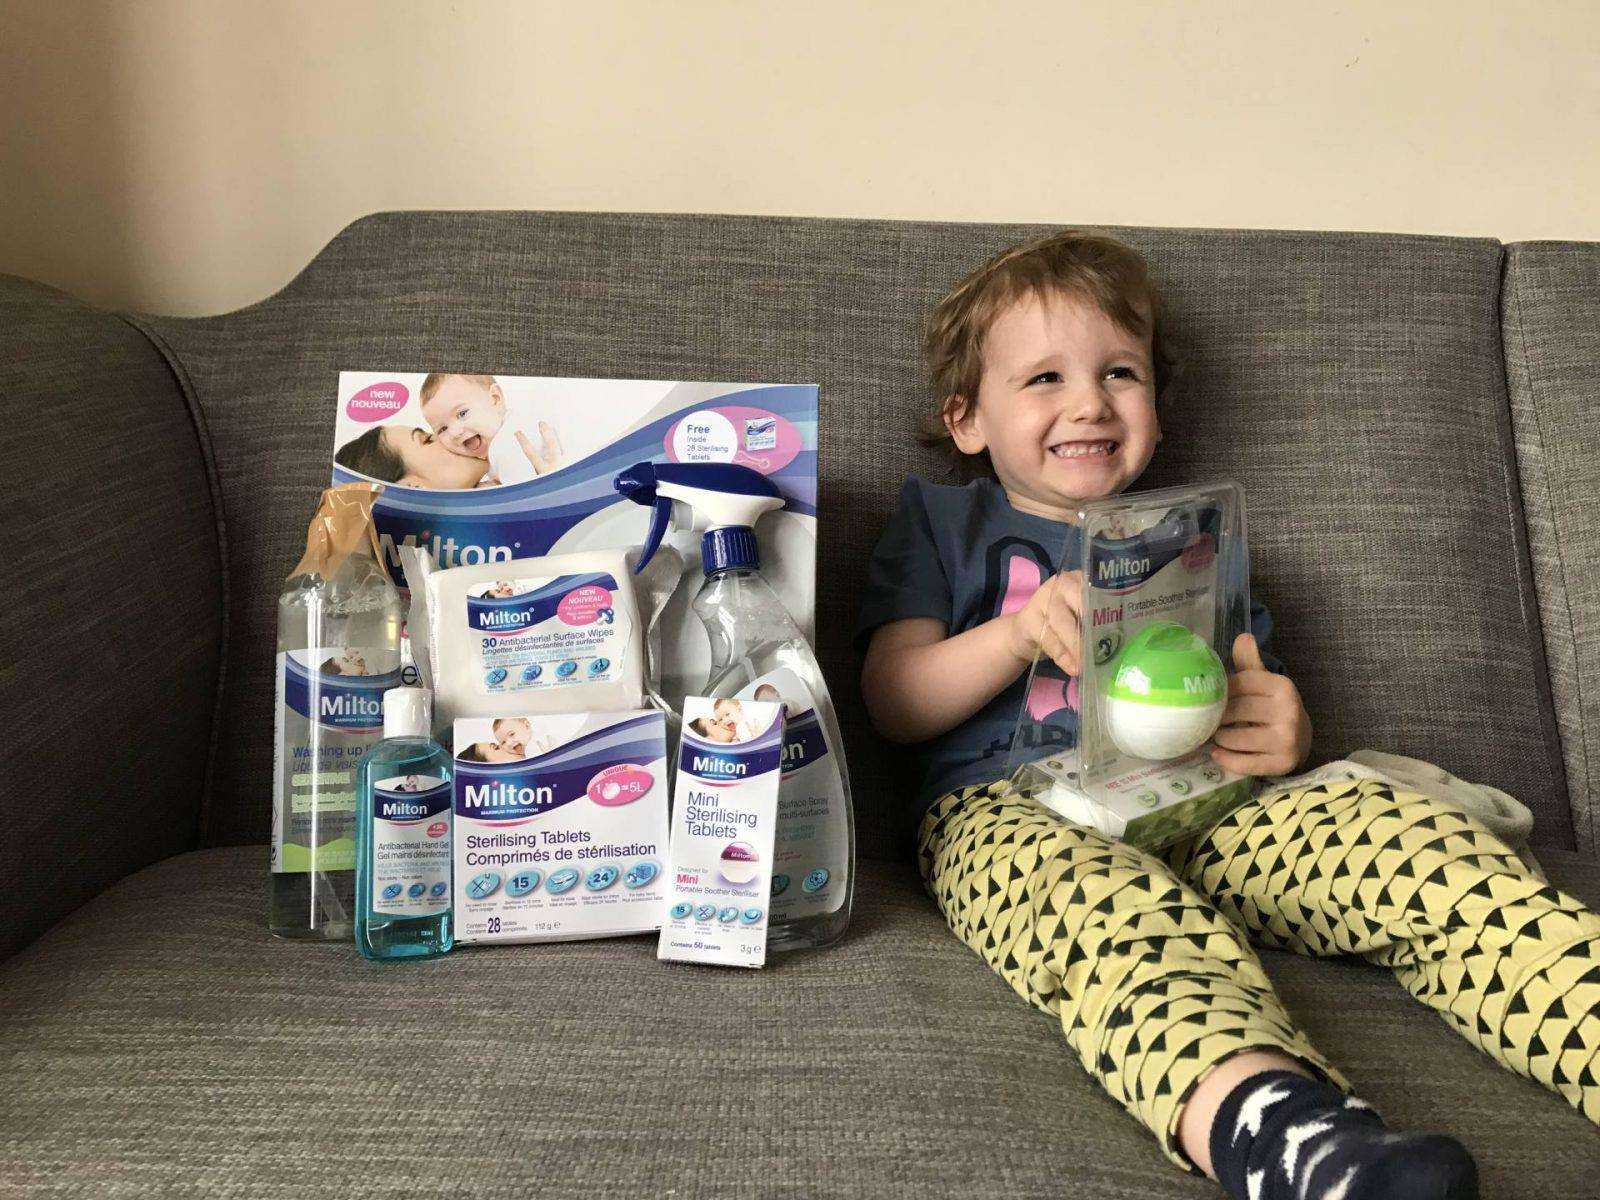 8 top tips to keep your baby's home clean, IMG 3485 1600x1200%, new-dad, lifestyle%